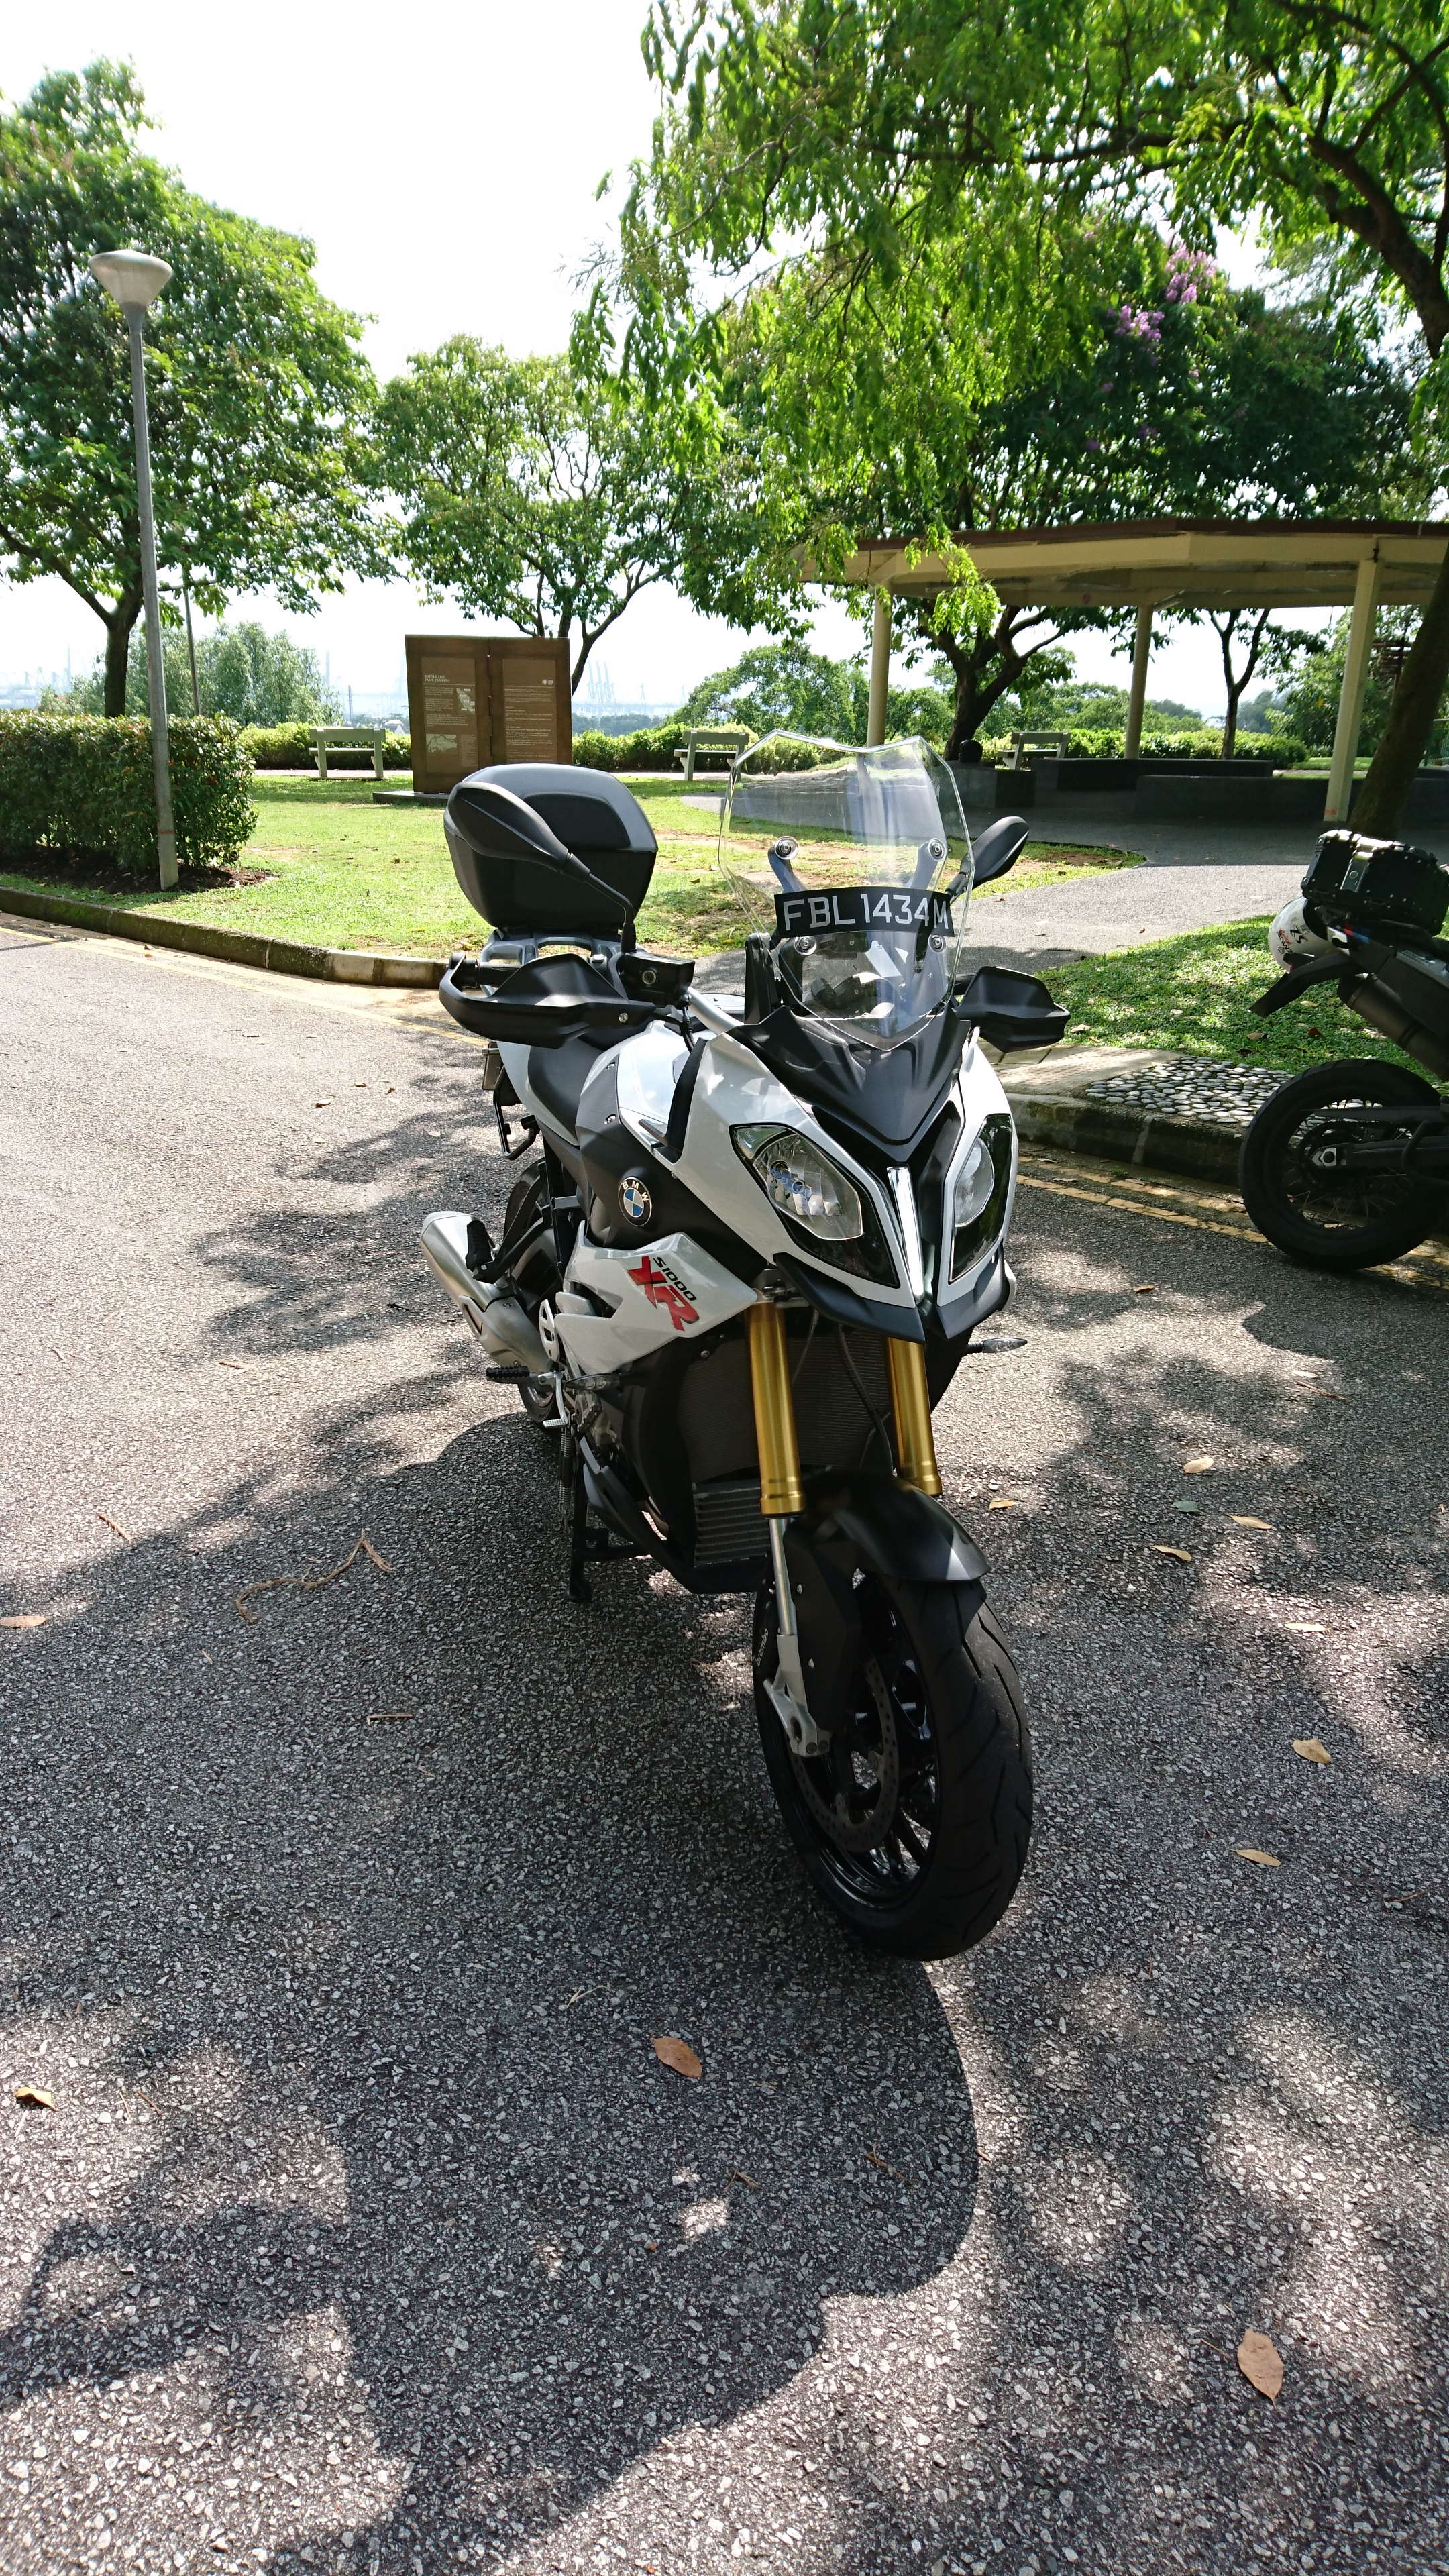 Front view of the BMW S1000XR